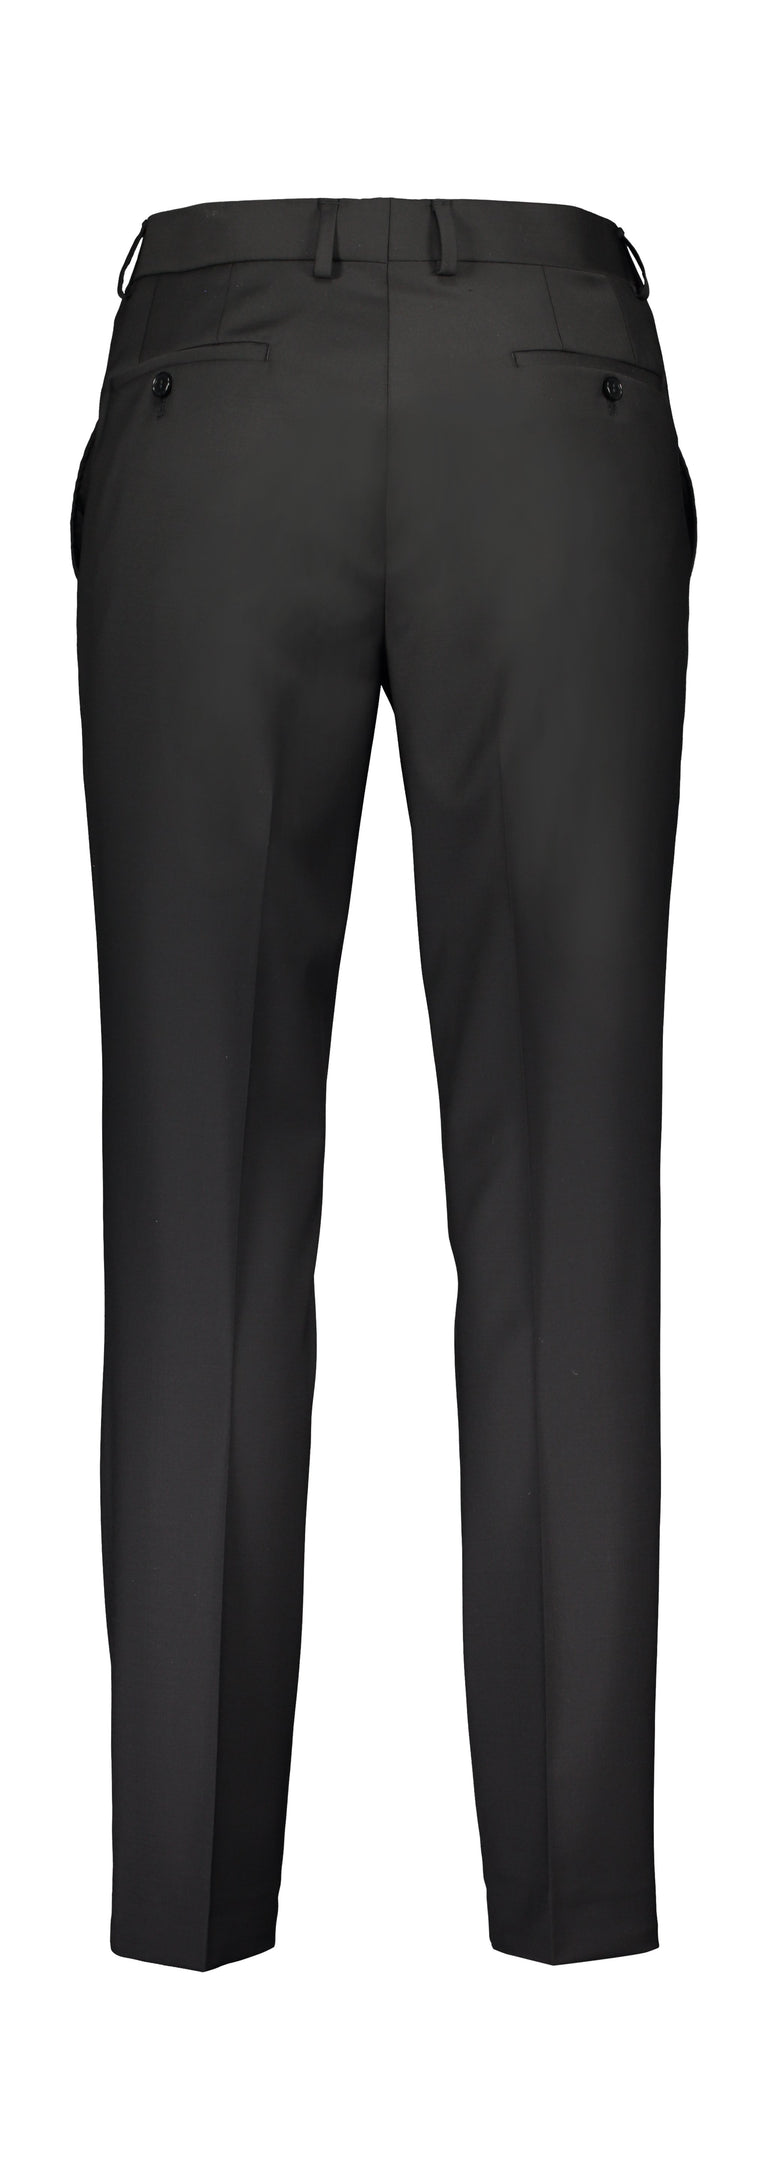 Athlete fit suit in firm black (2145260601406)